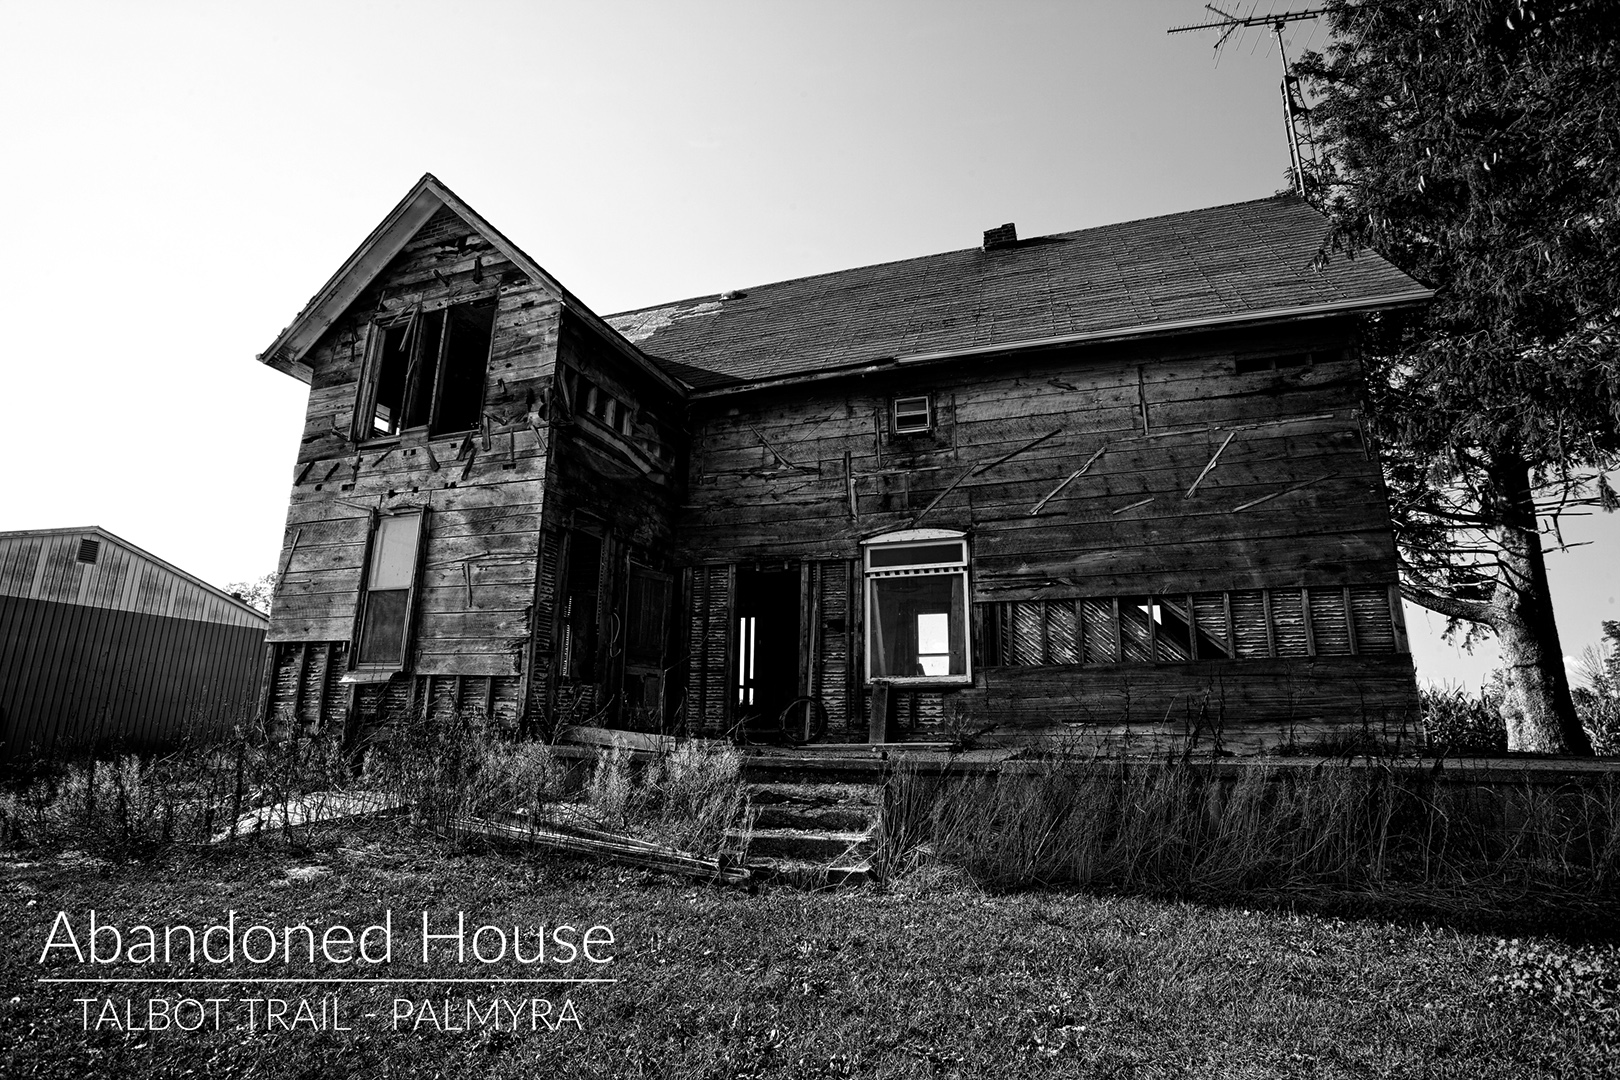 Abandoned House - Talbot Trail - Palmyra, ON